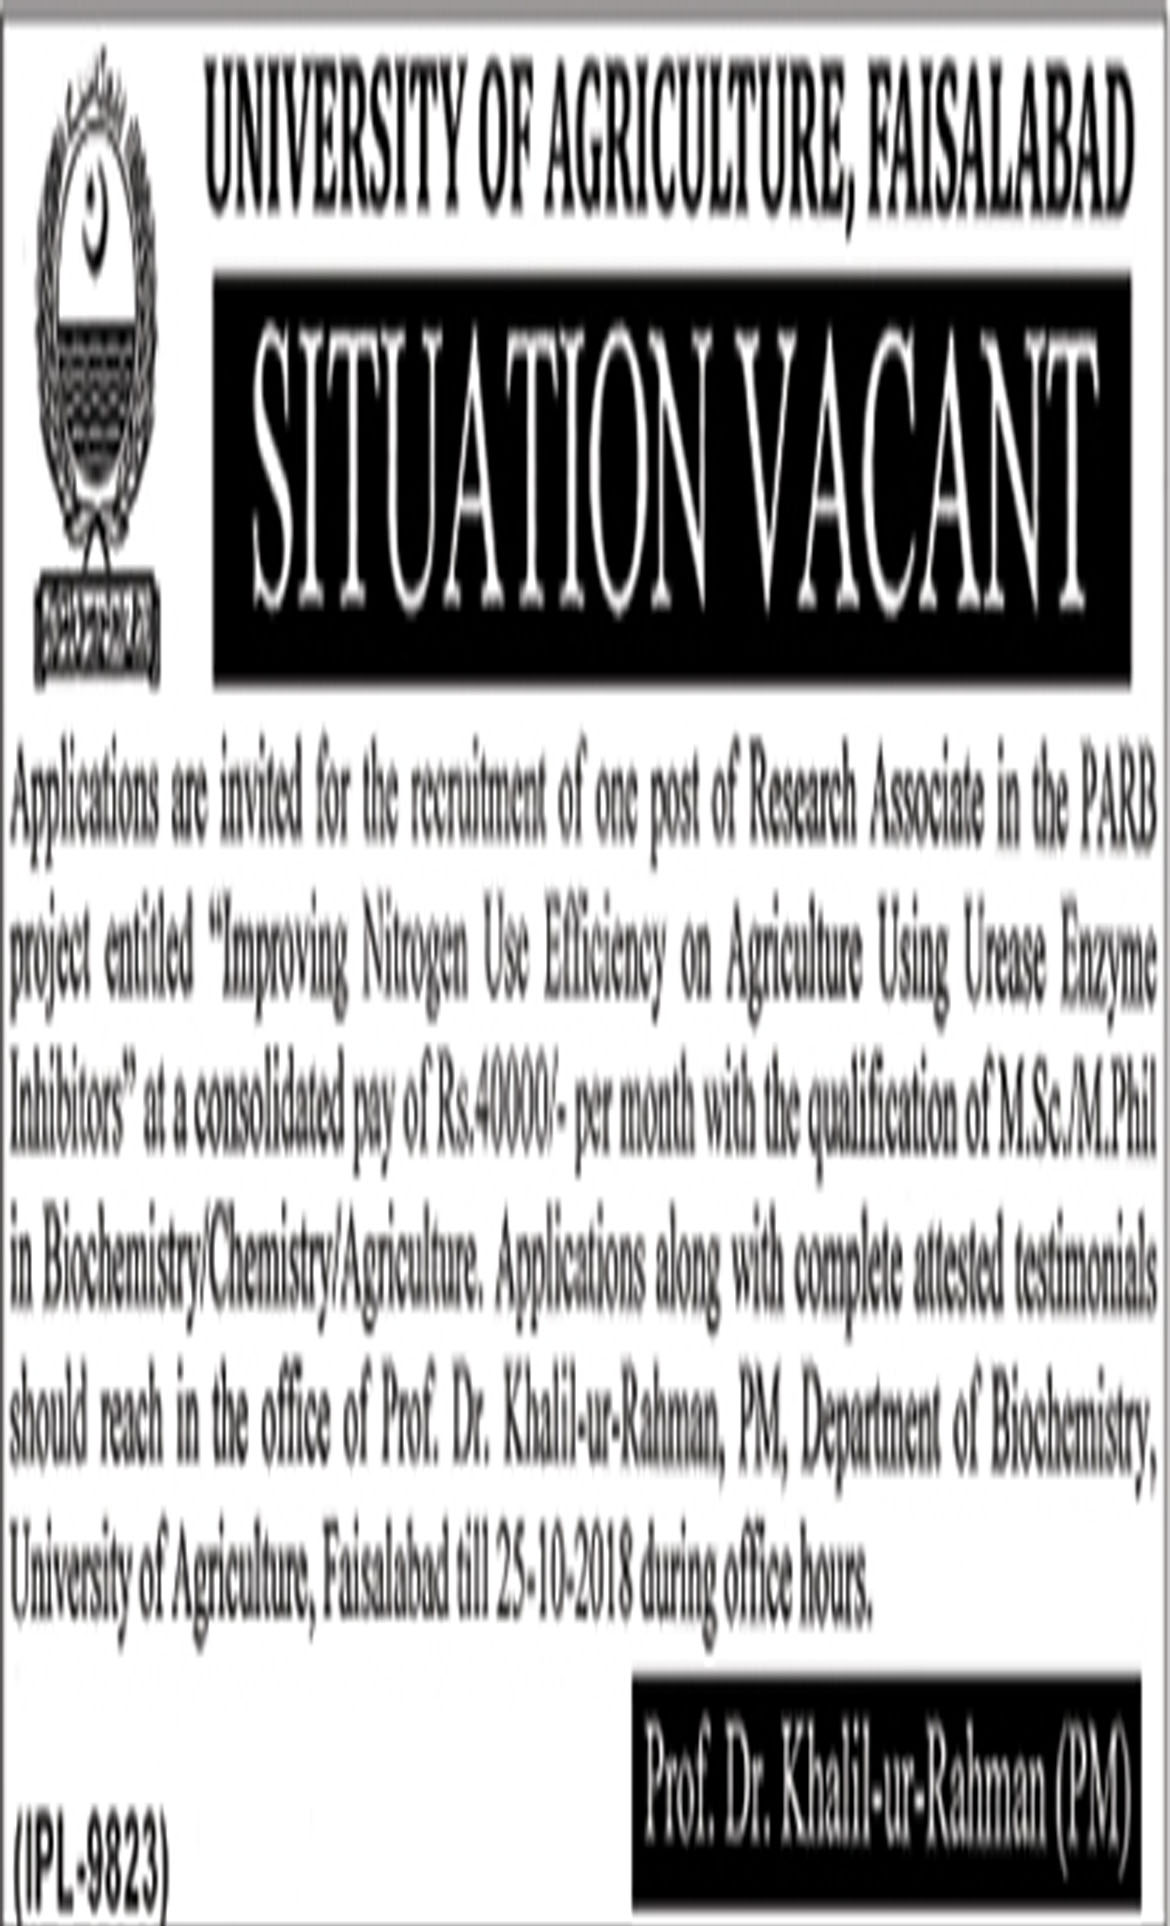 Jobs In University Of Agriculture Faisalabad 5 Oct 2018